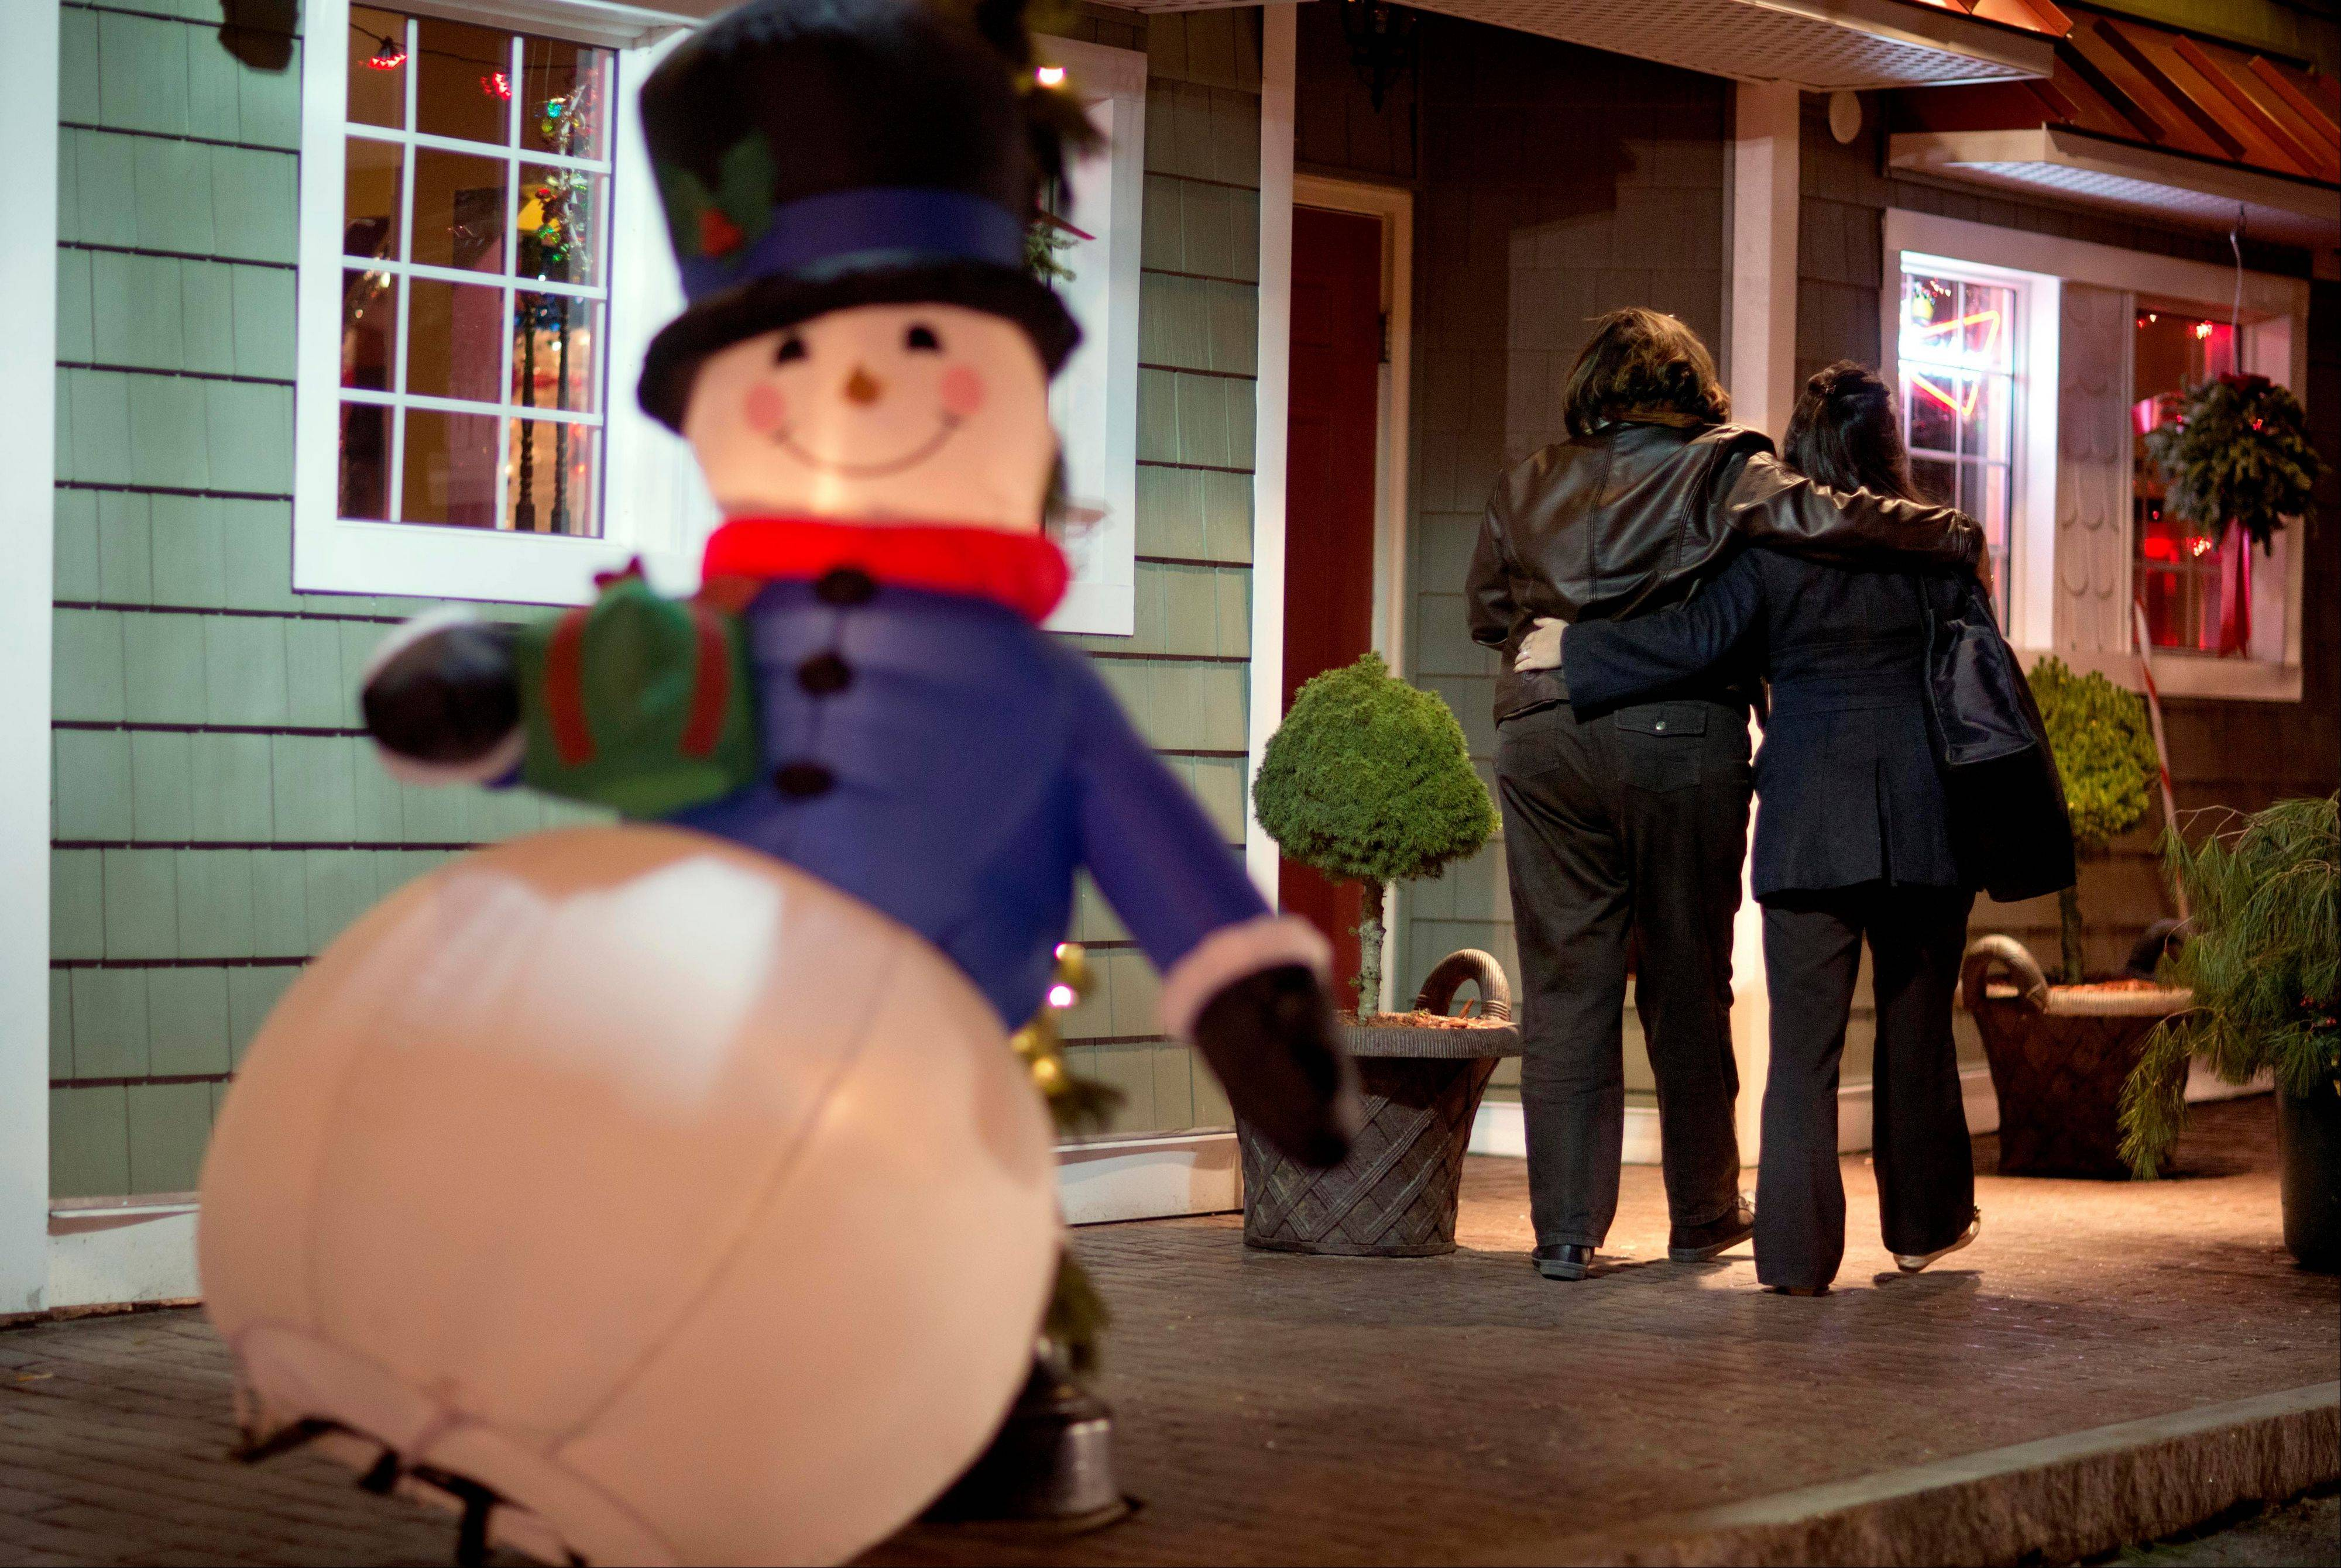 In this Dec. 19, 2012 file photo, mourners walk past a Frosty the Snowman Christmas decoration after visiting a memorial for the Sandy Hook Elementary School shooting victims, in Newtown, Conn. In the wake of the shooting, the grieving town is trying to find meaning in Christmas.